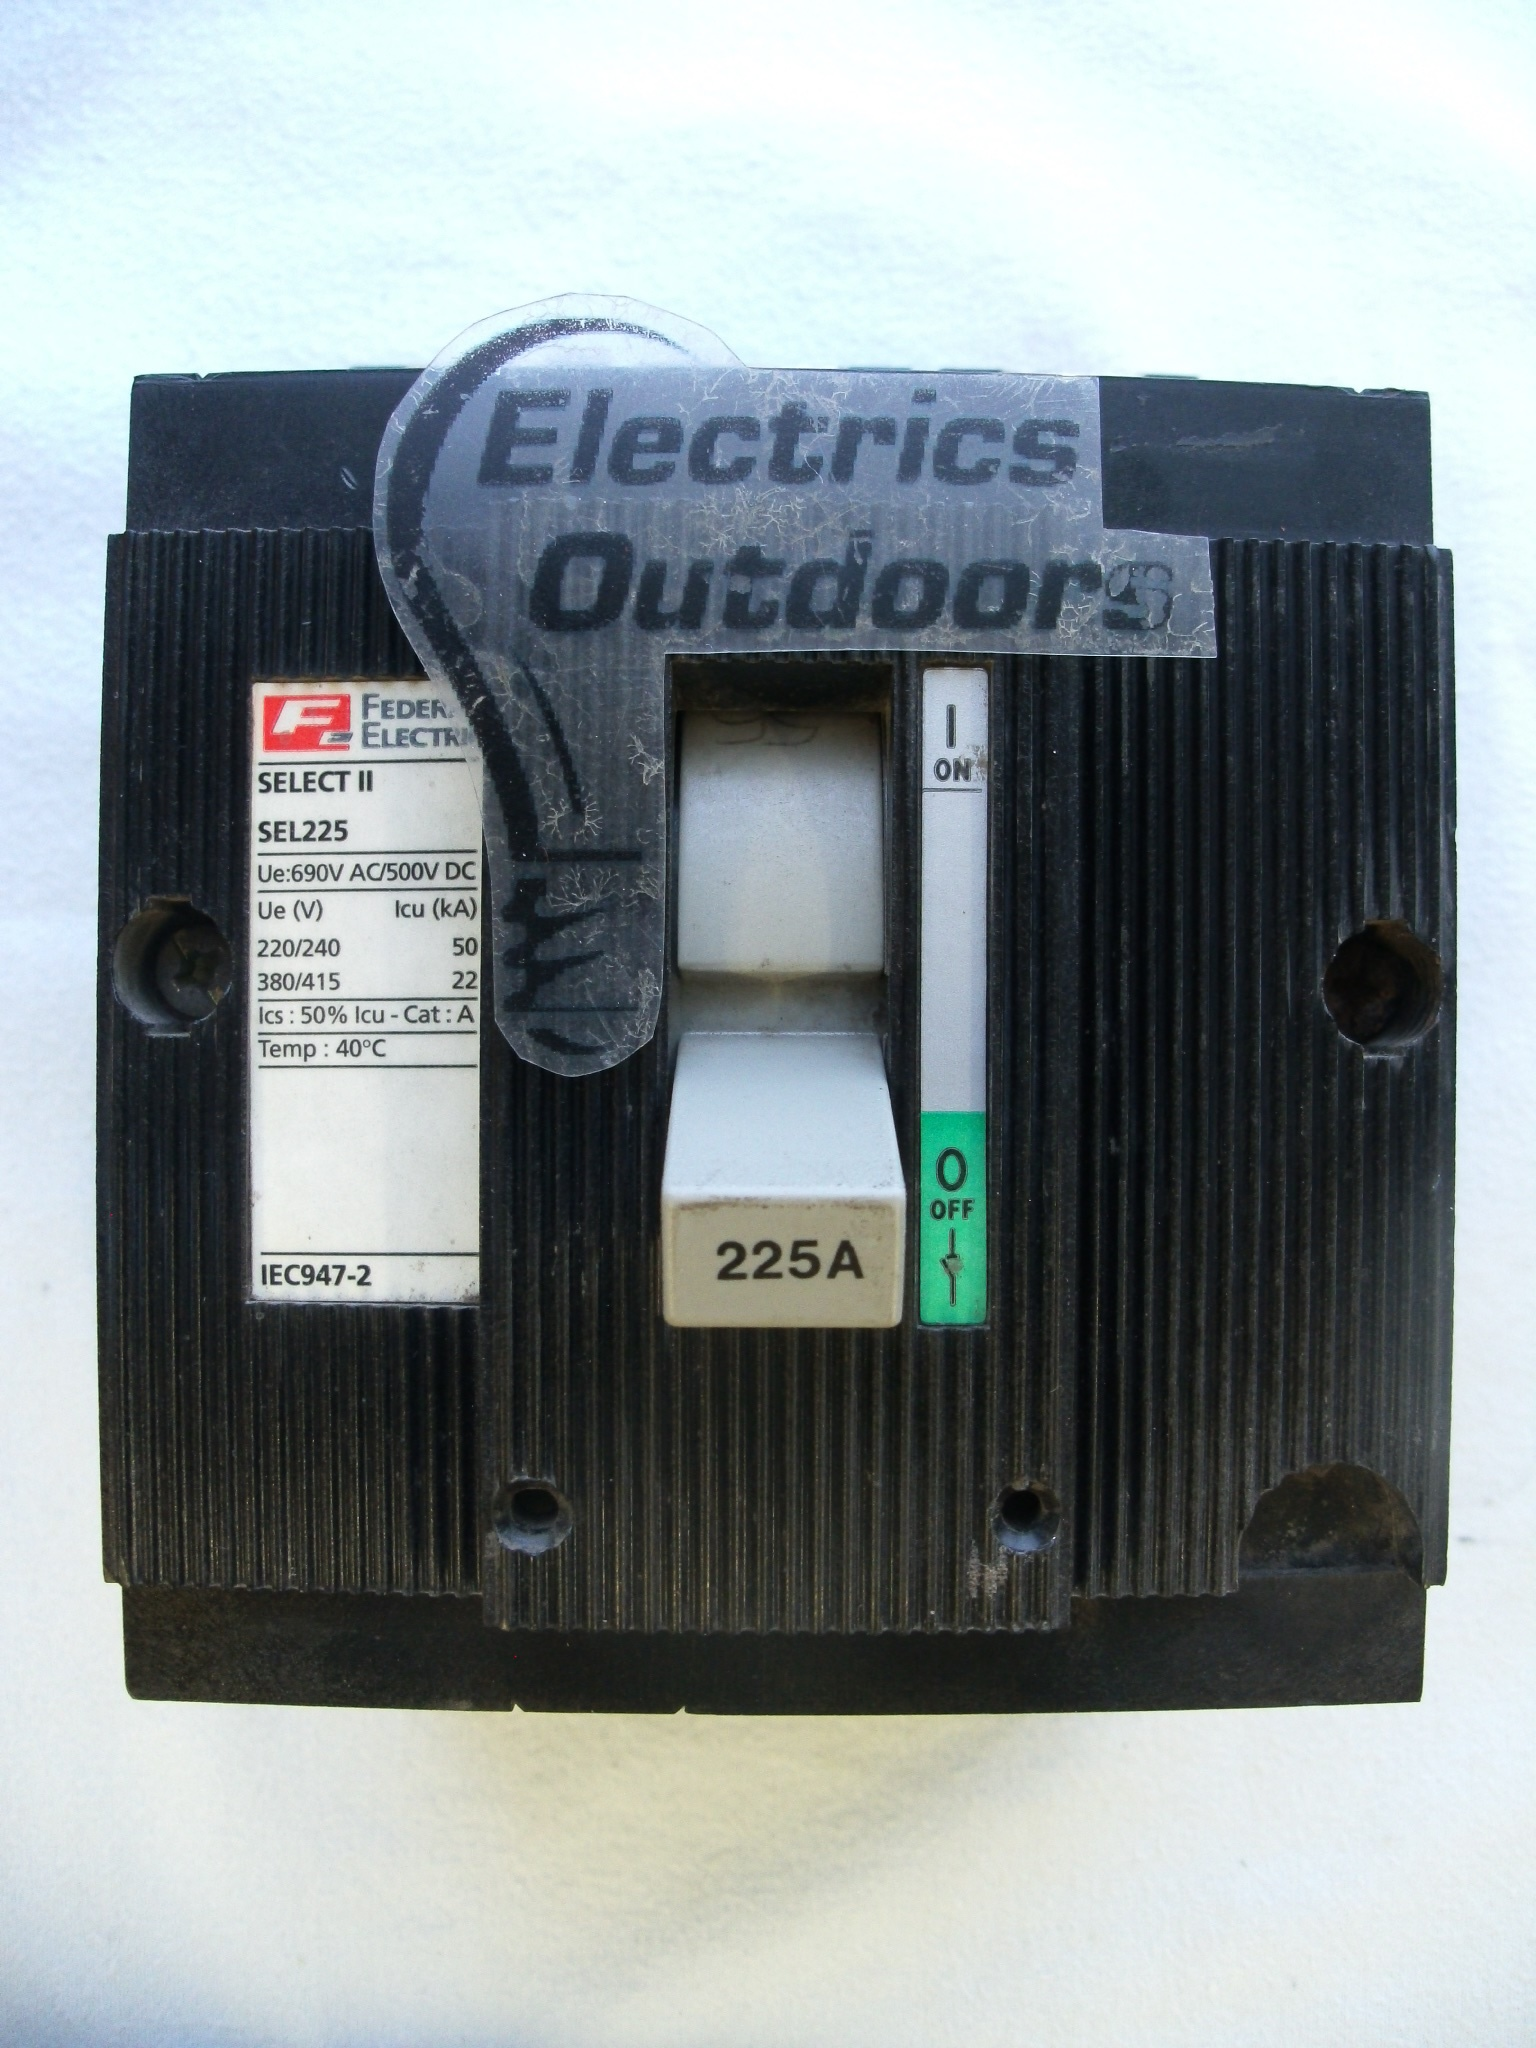 FEDERAL ELECTRIC 225 AMP 22 kA TRIPLE POLE MCCB SELECT II SEL225